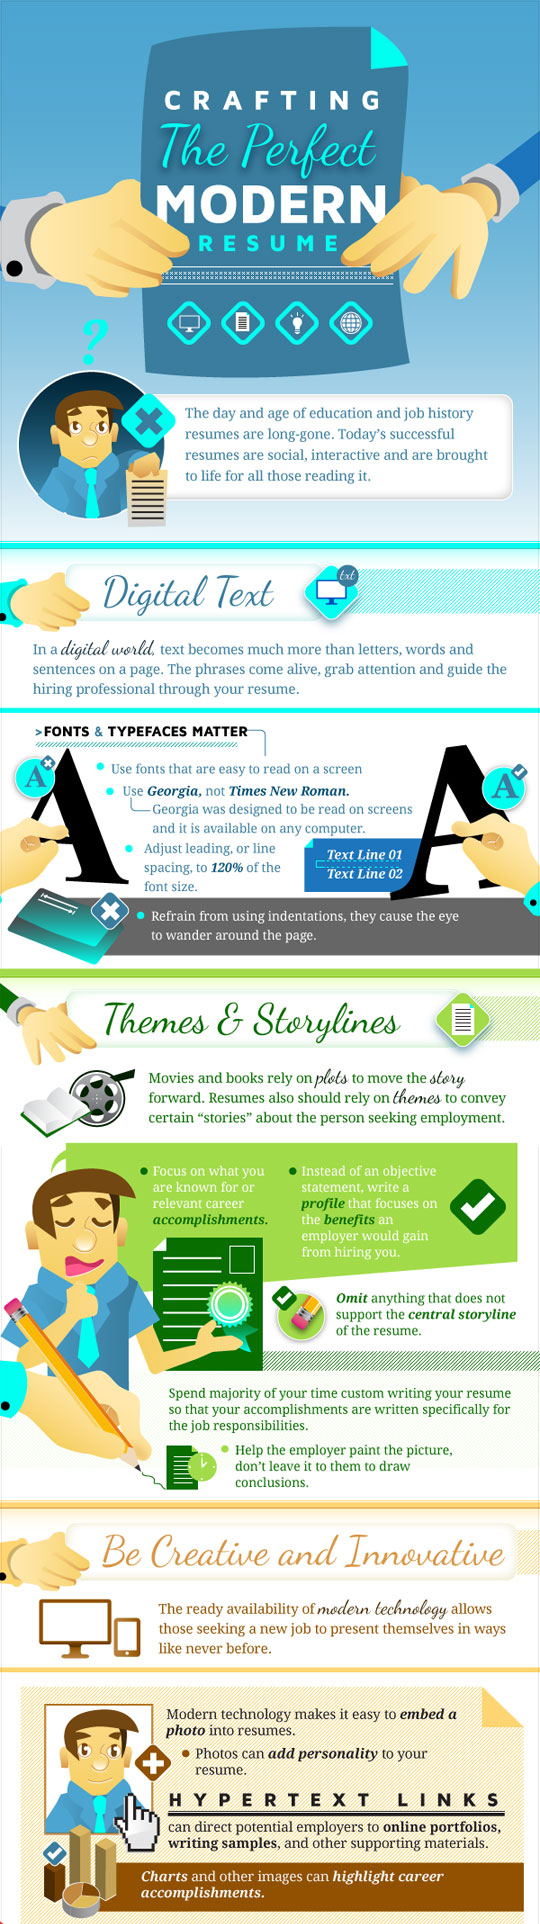 cool-infographic-perfect-resume-modern